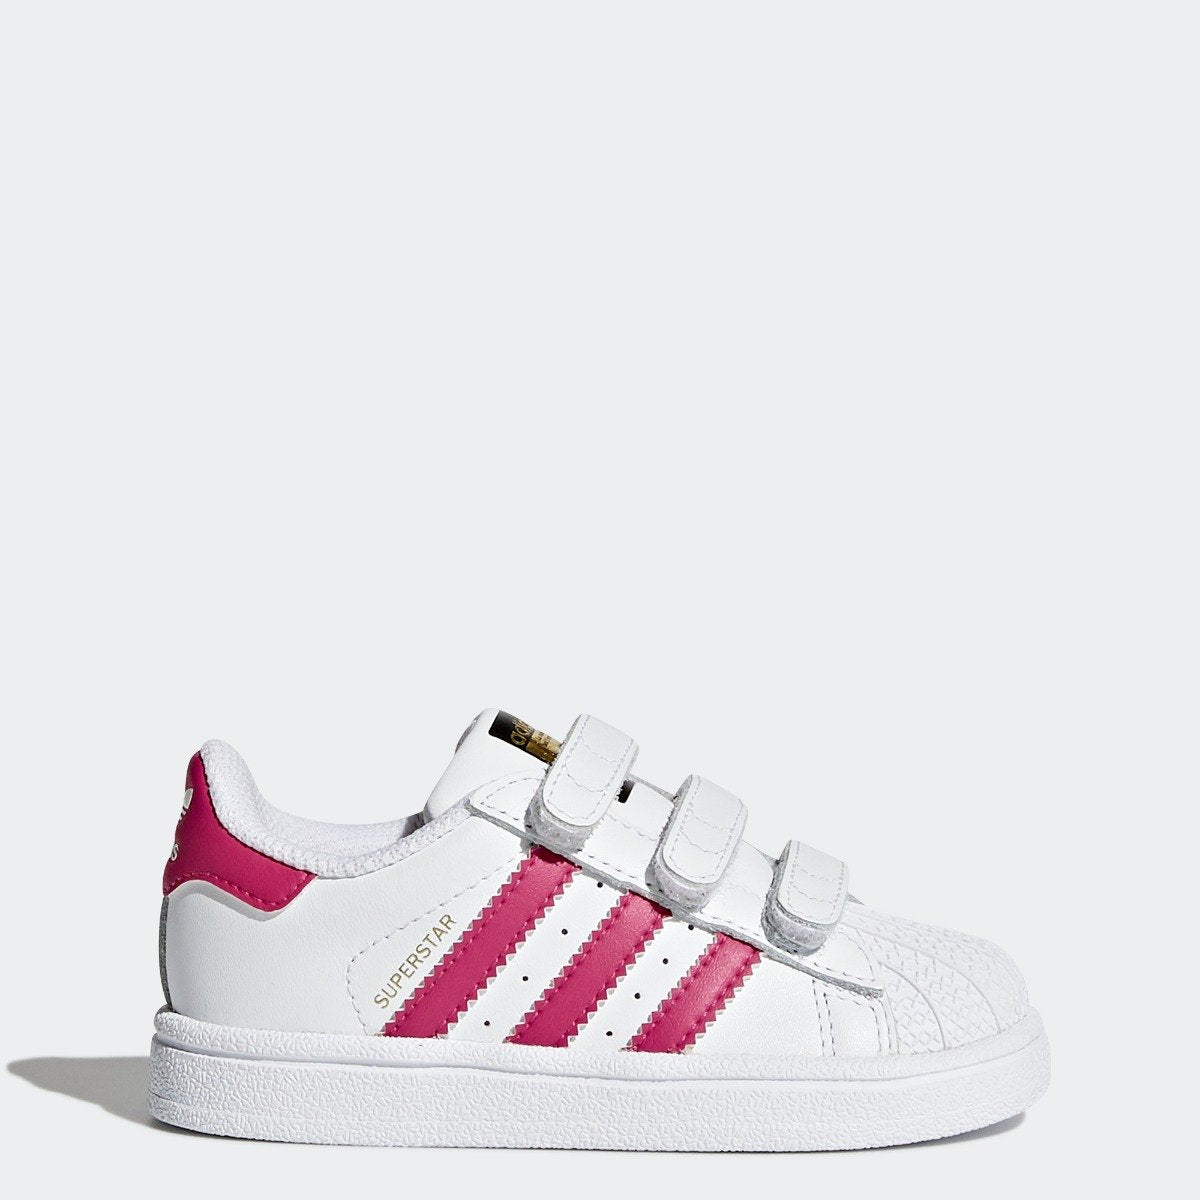 White Bold Originals Superstar Velcro Pink Toddler's Adidas Shoes 0OZnPNkX8w